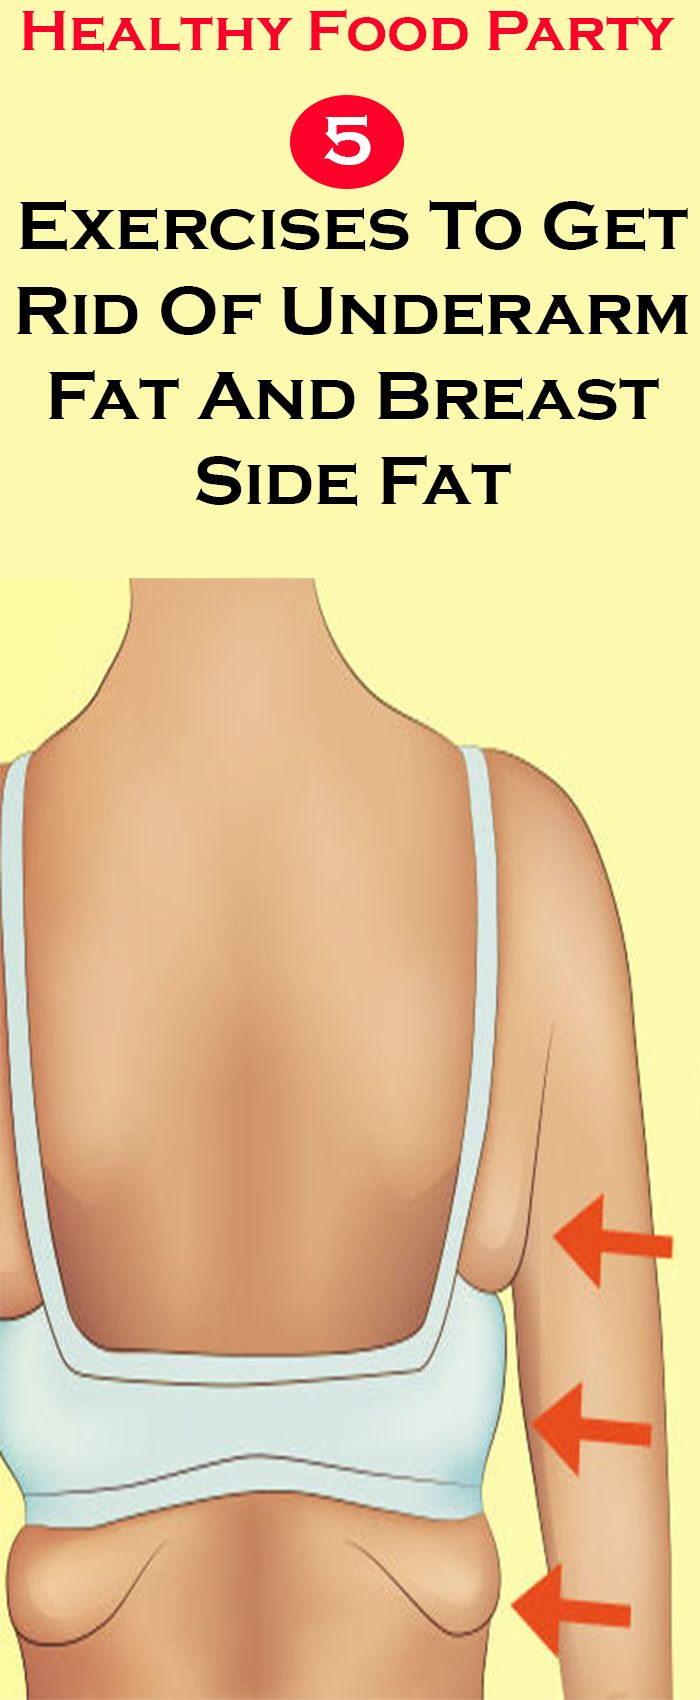 How To Get Rid Of Fat On Side Of Breast